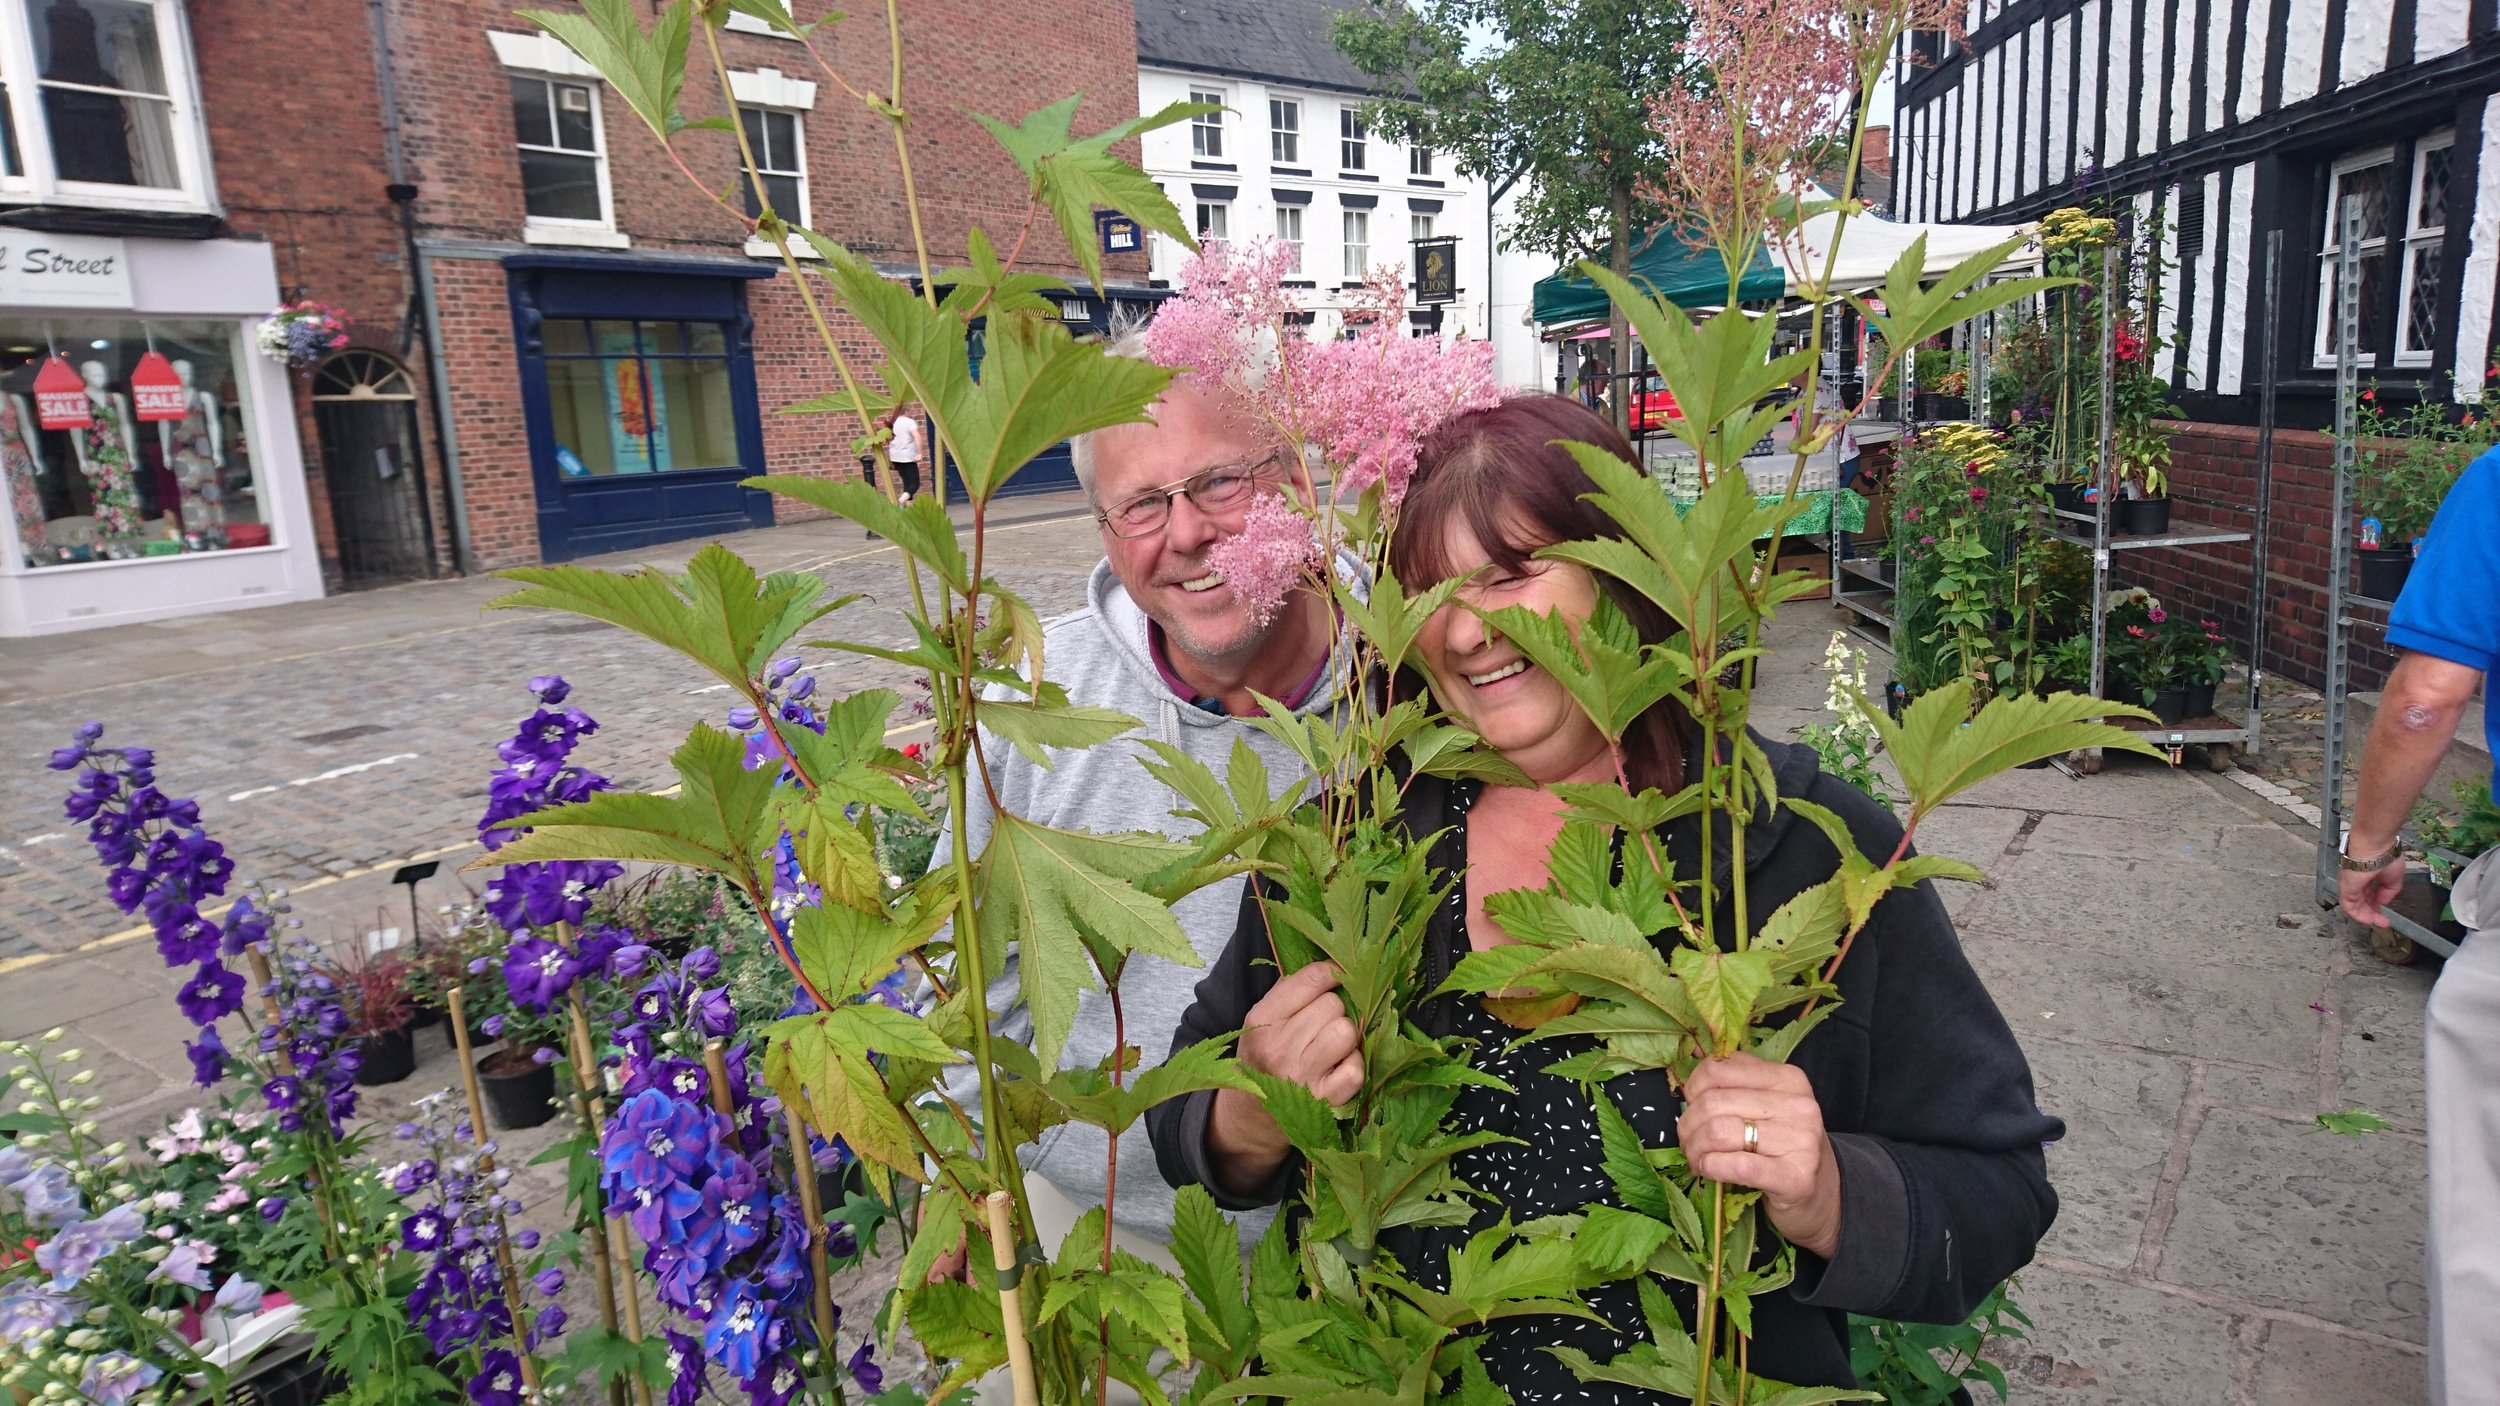 Just Plants - Location: Outdoor MarketTrading: ThursdayContact: 07932 911868Email: justplants@hotmail.co.ukAll aspects of seasonal garden plants and flowers, hanging pots and baskets, indoor plants and beautiful silk flowers.